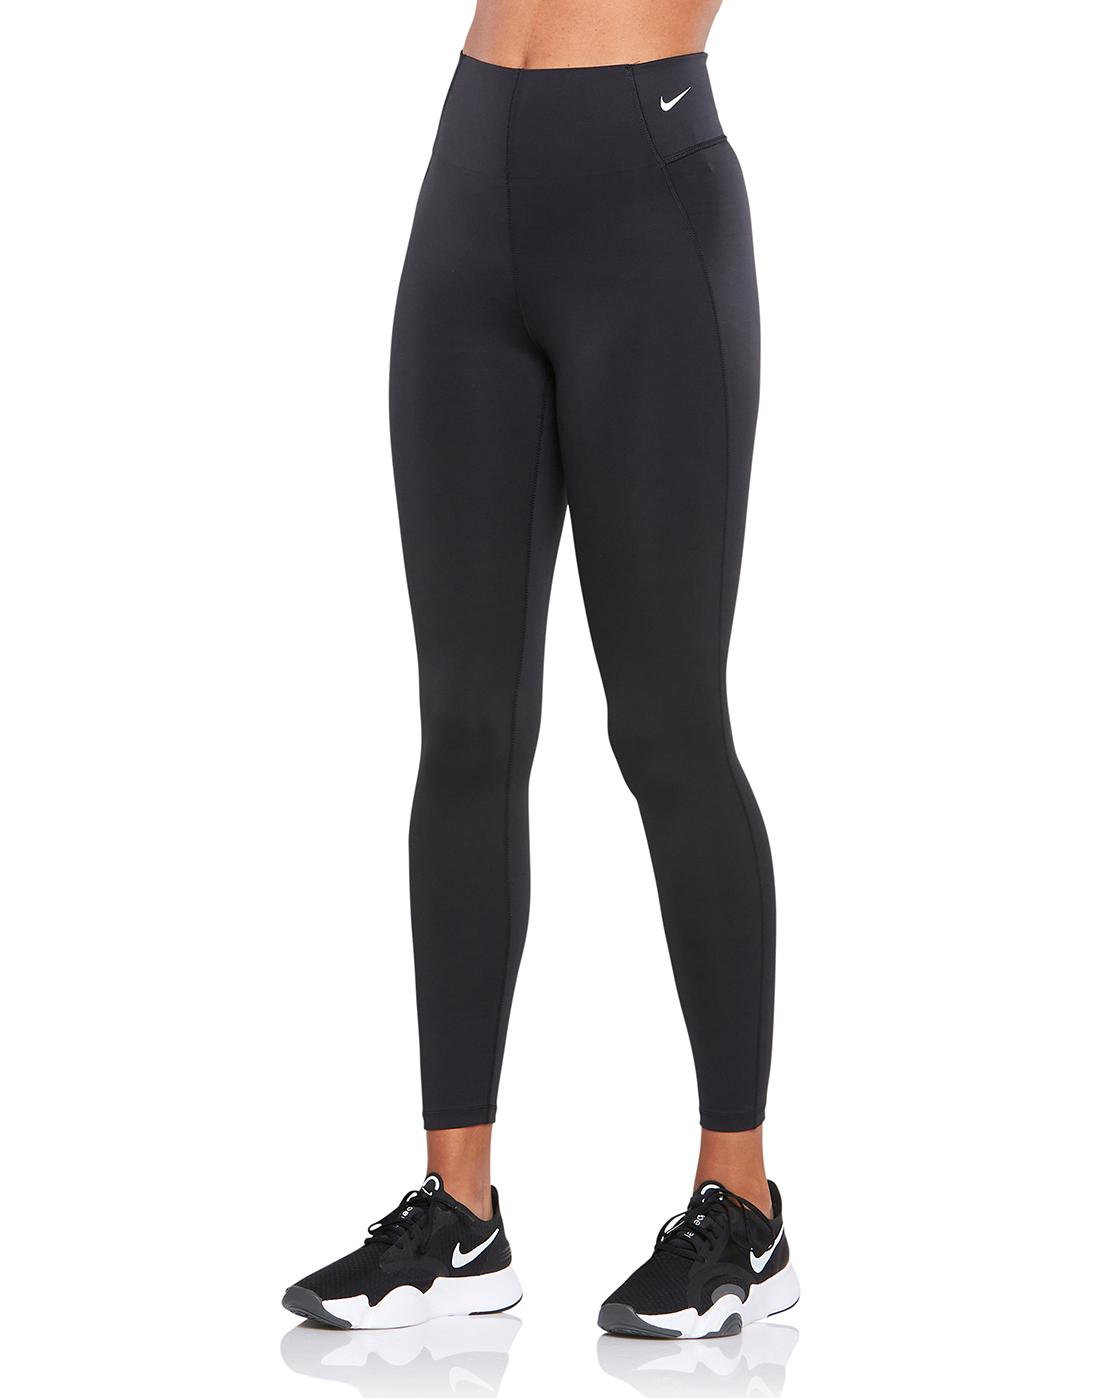 b4880c0d21dcc Women's Black Nike Sculpt Victory Tights | Life Style Sports